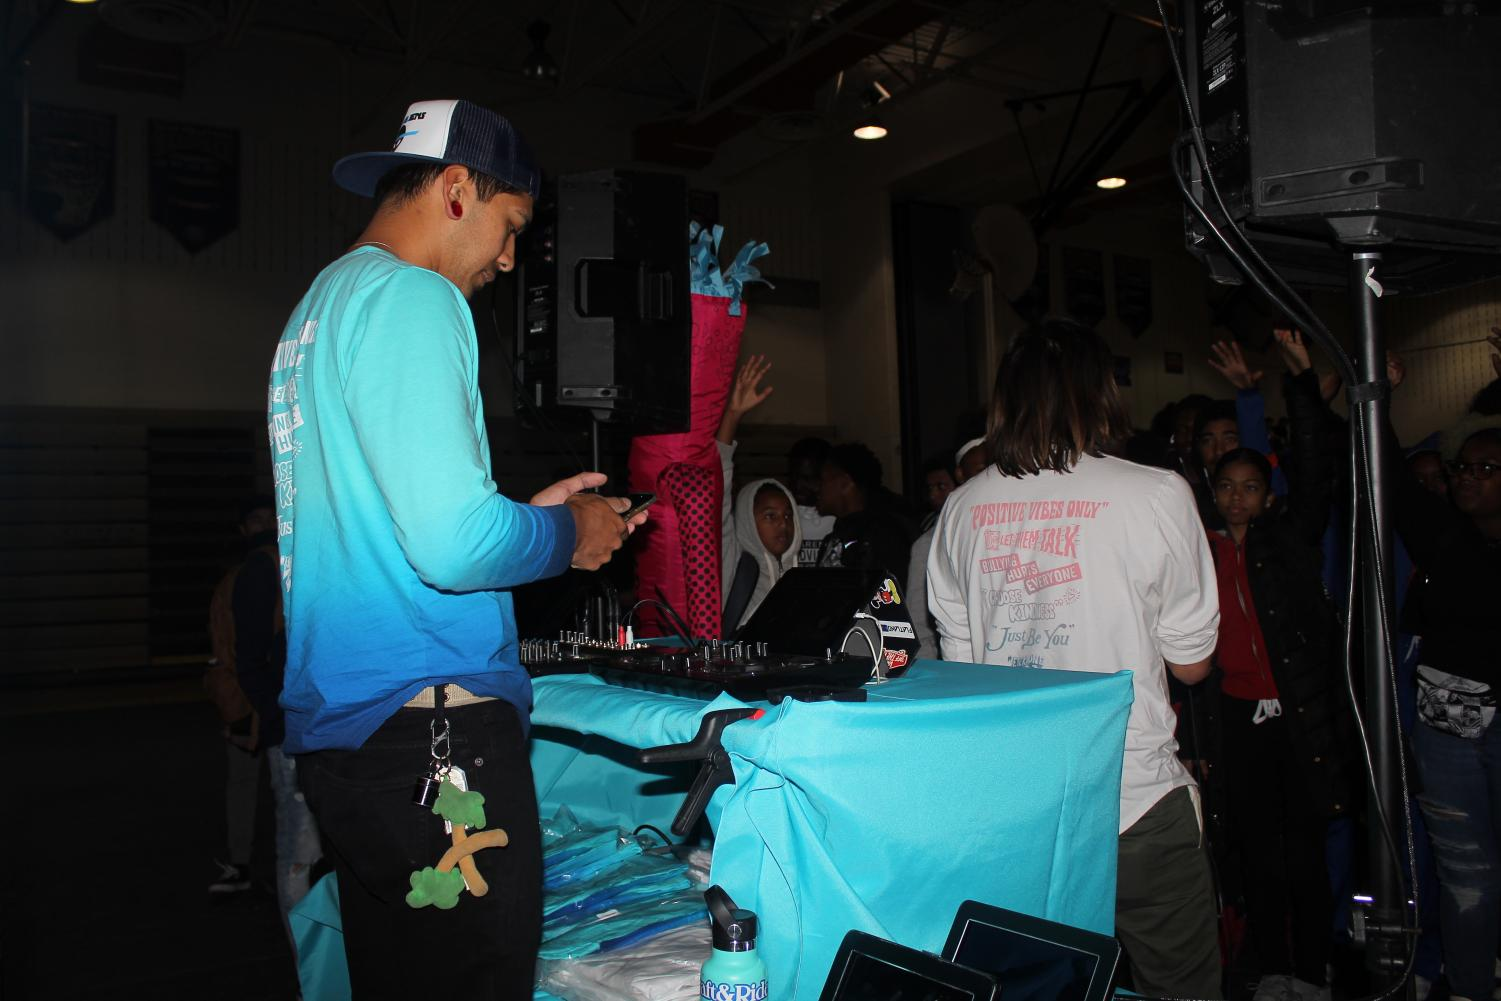 The DJ chooses music from a playlist to hype up the crowd at the event.